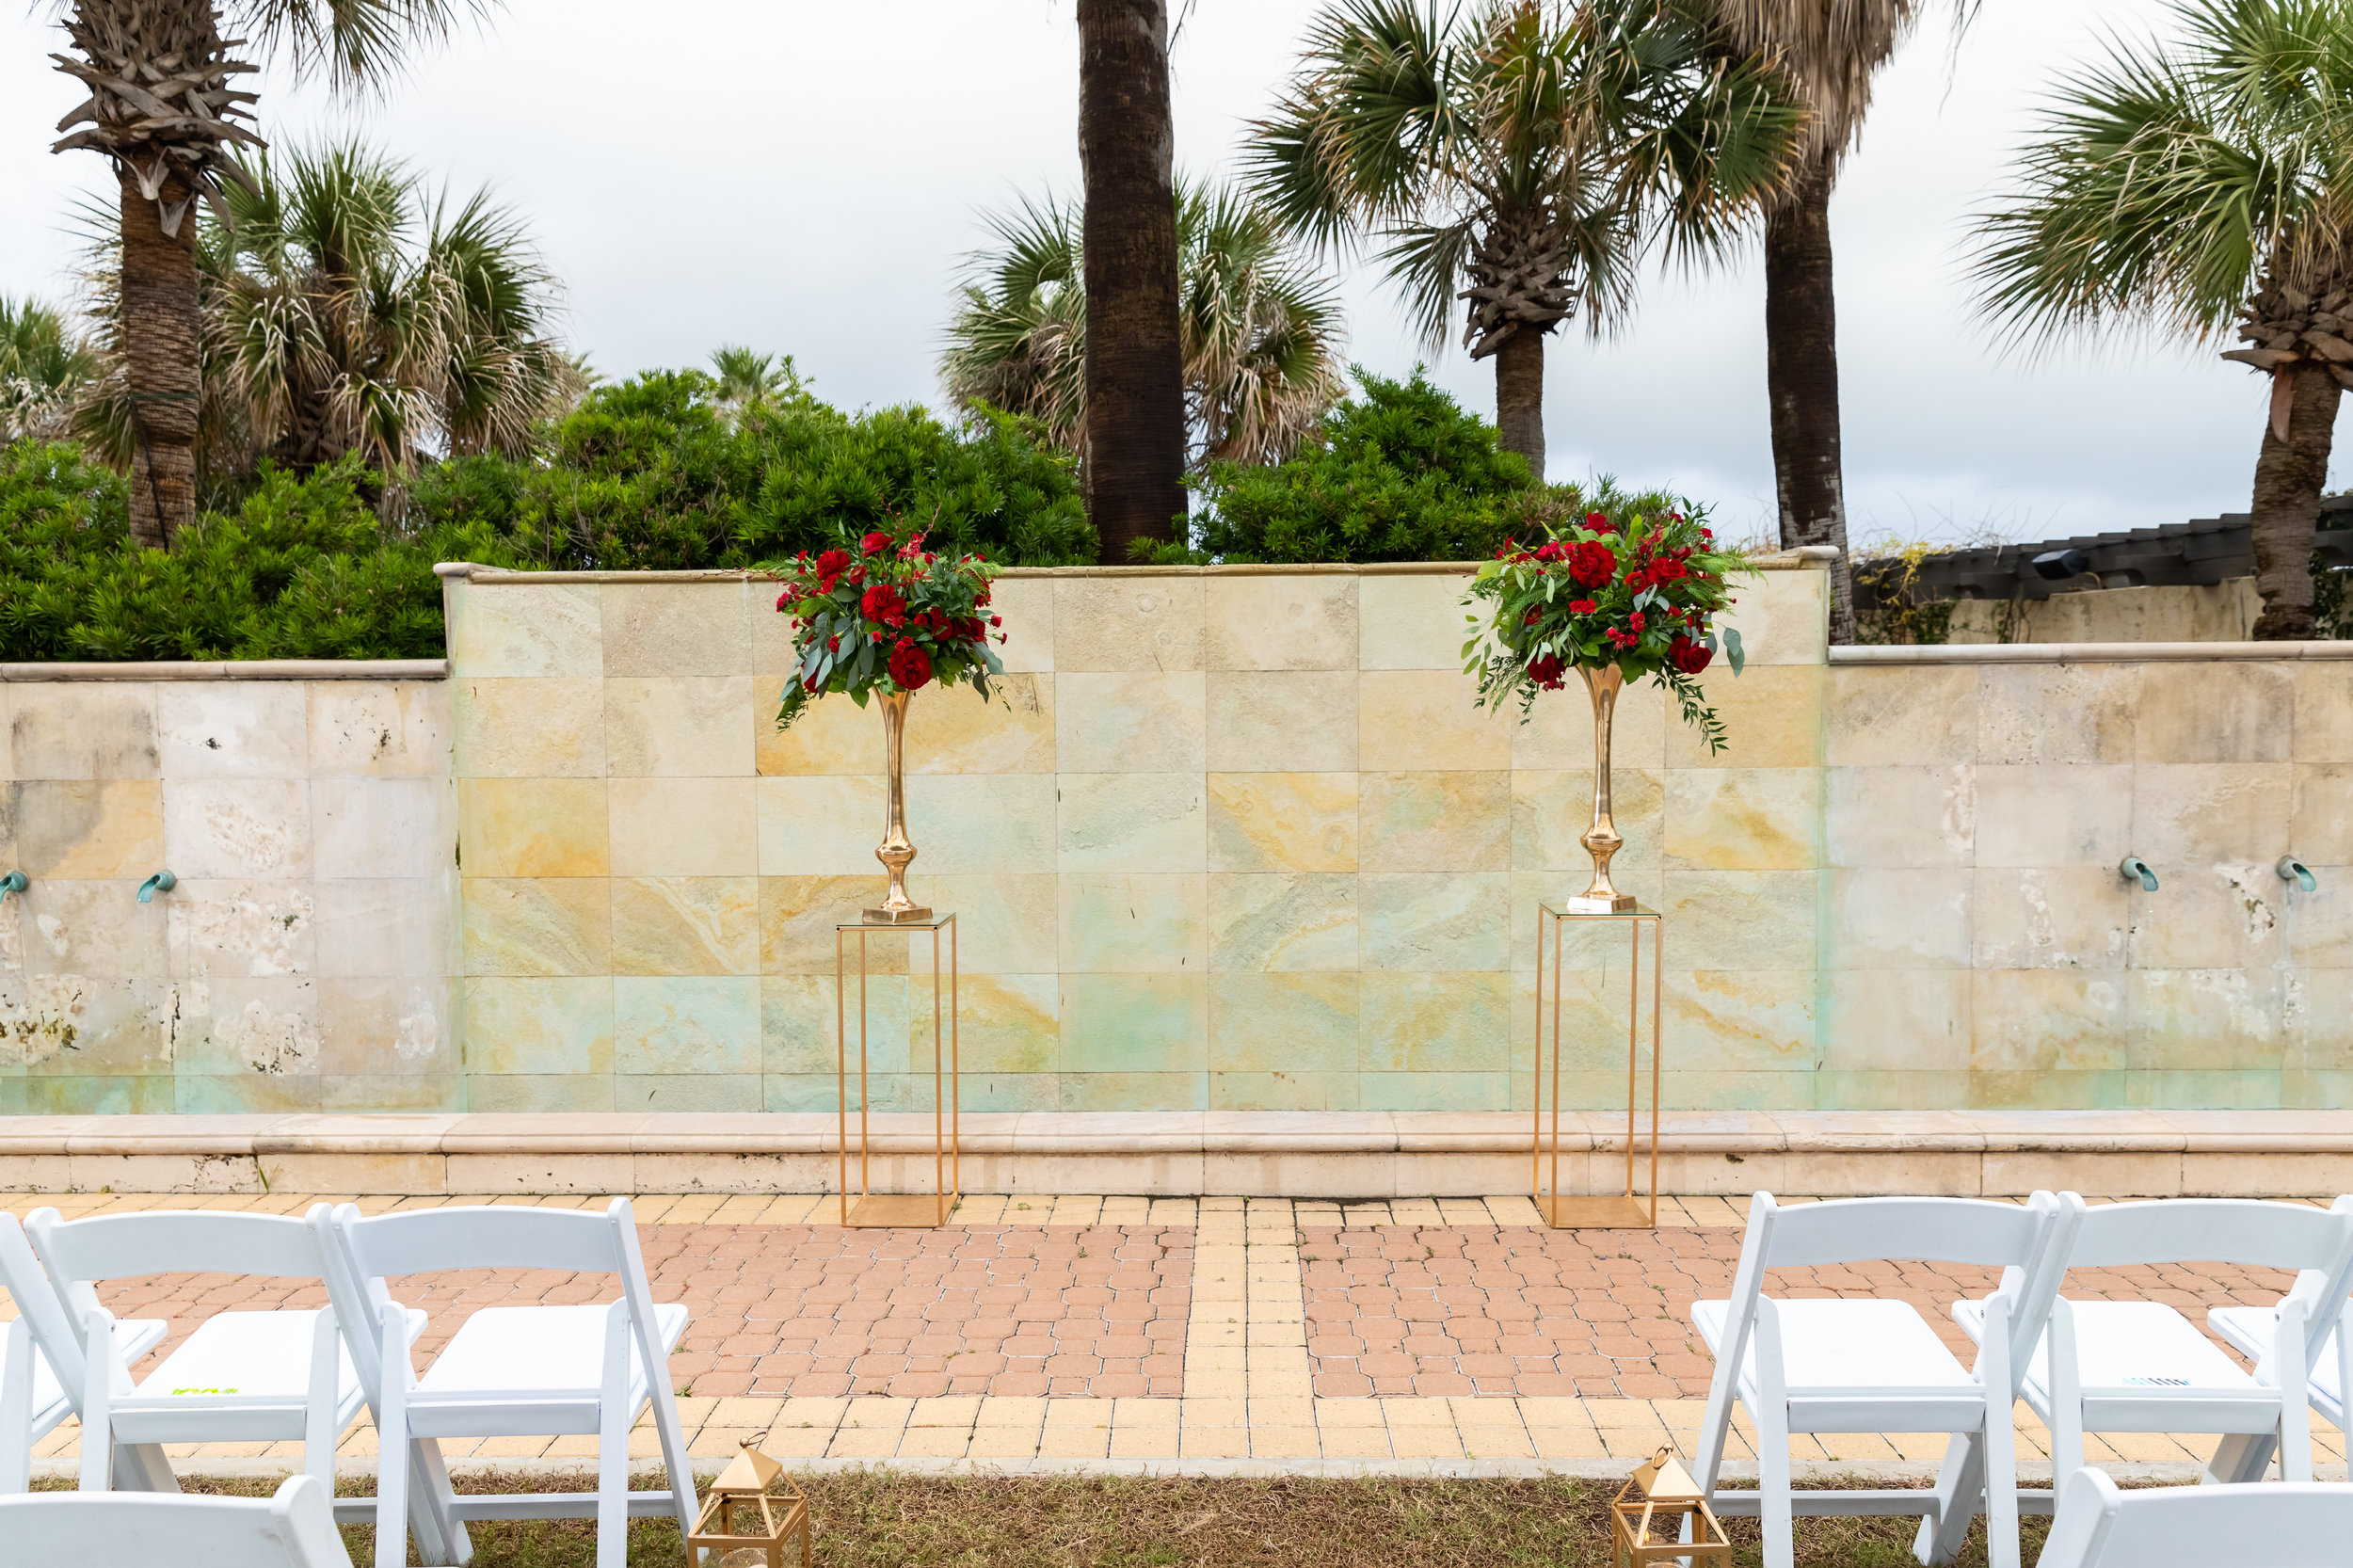 Gold framed columns for a ceremony backdrop with red floral at Hotel Galvez